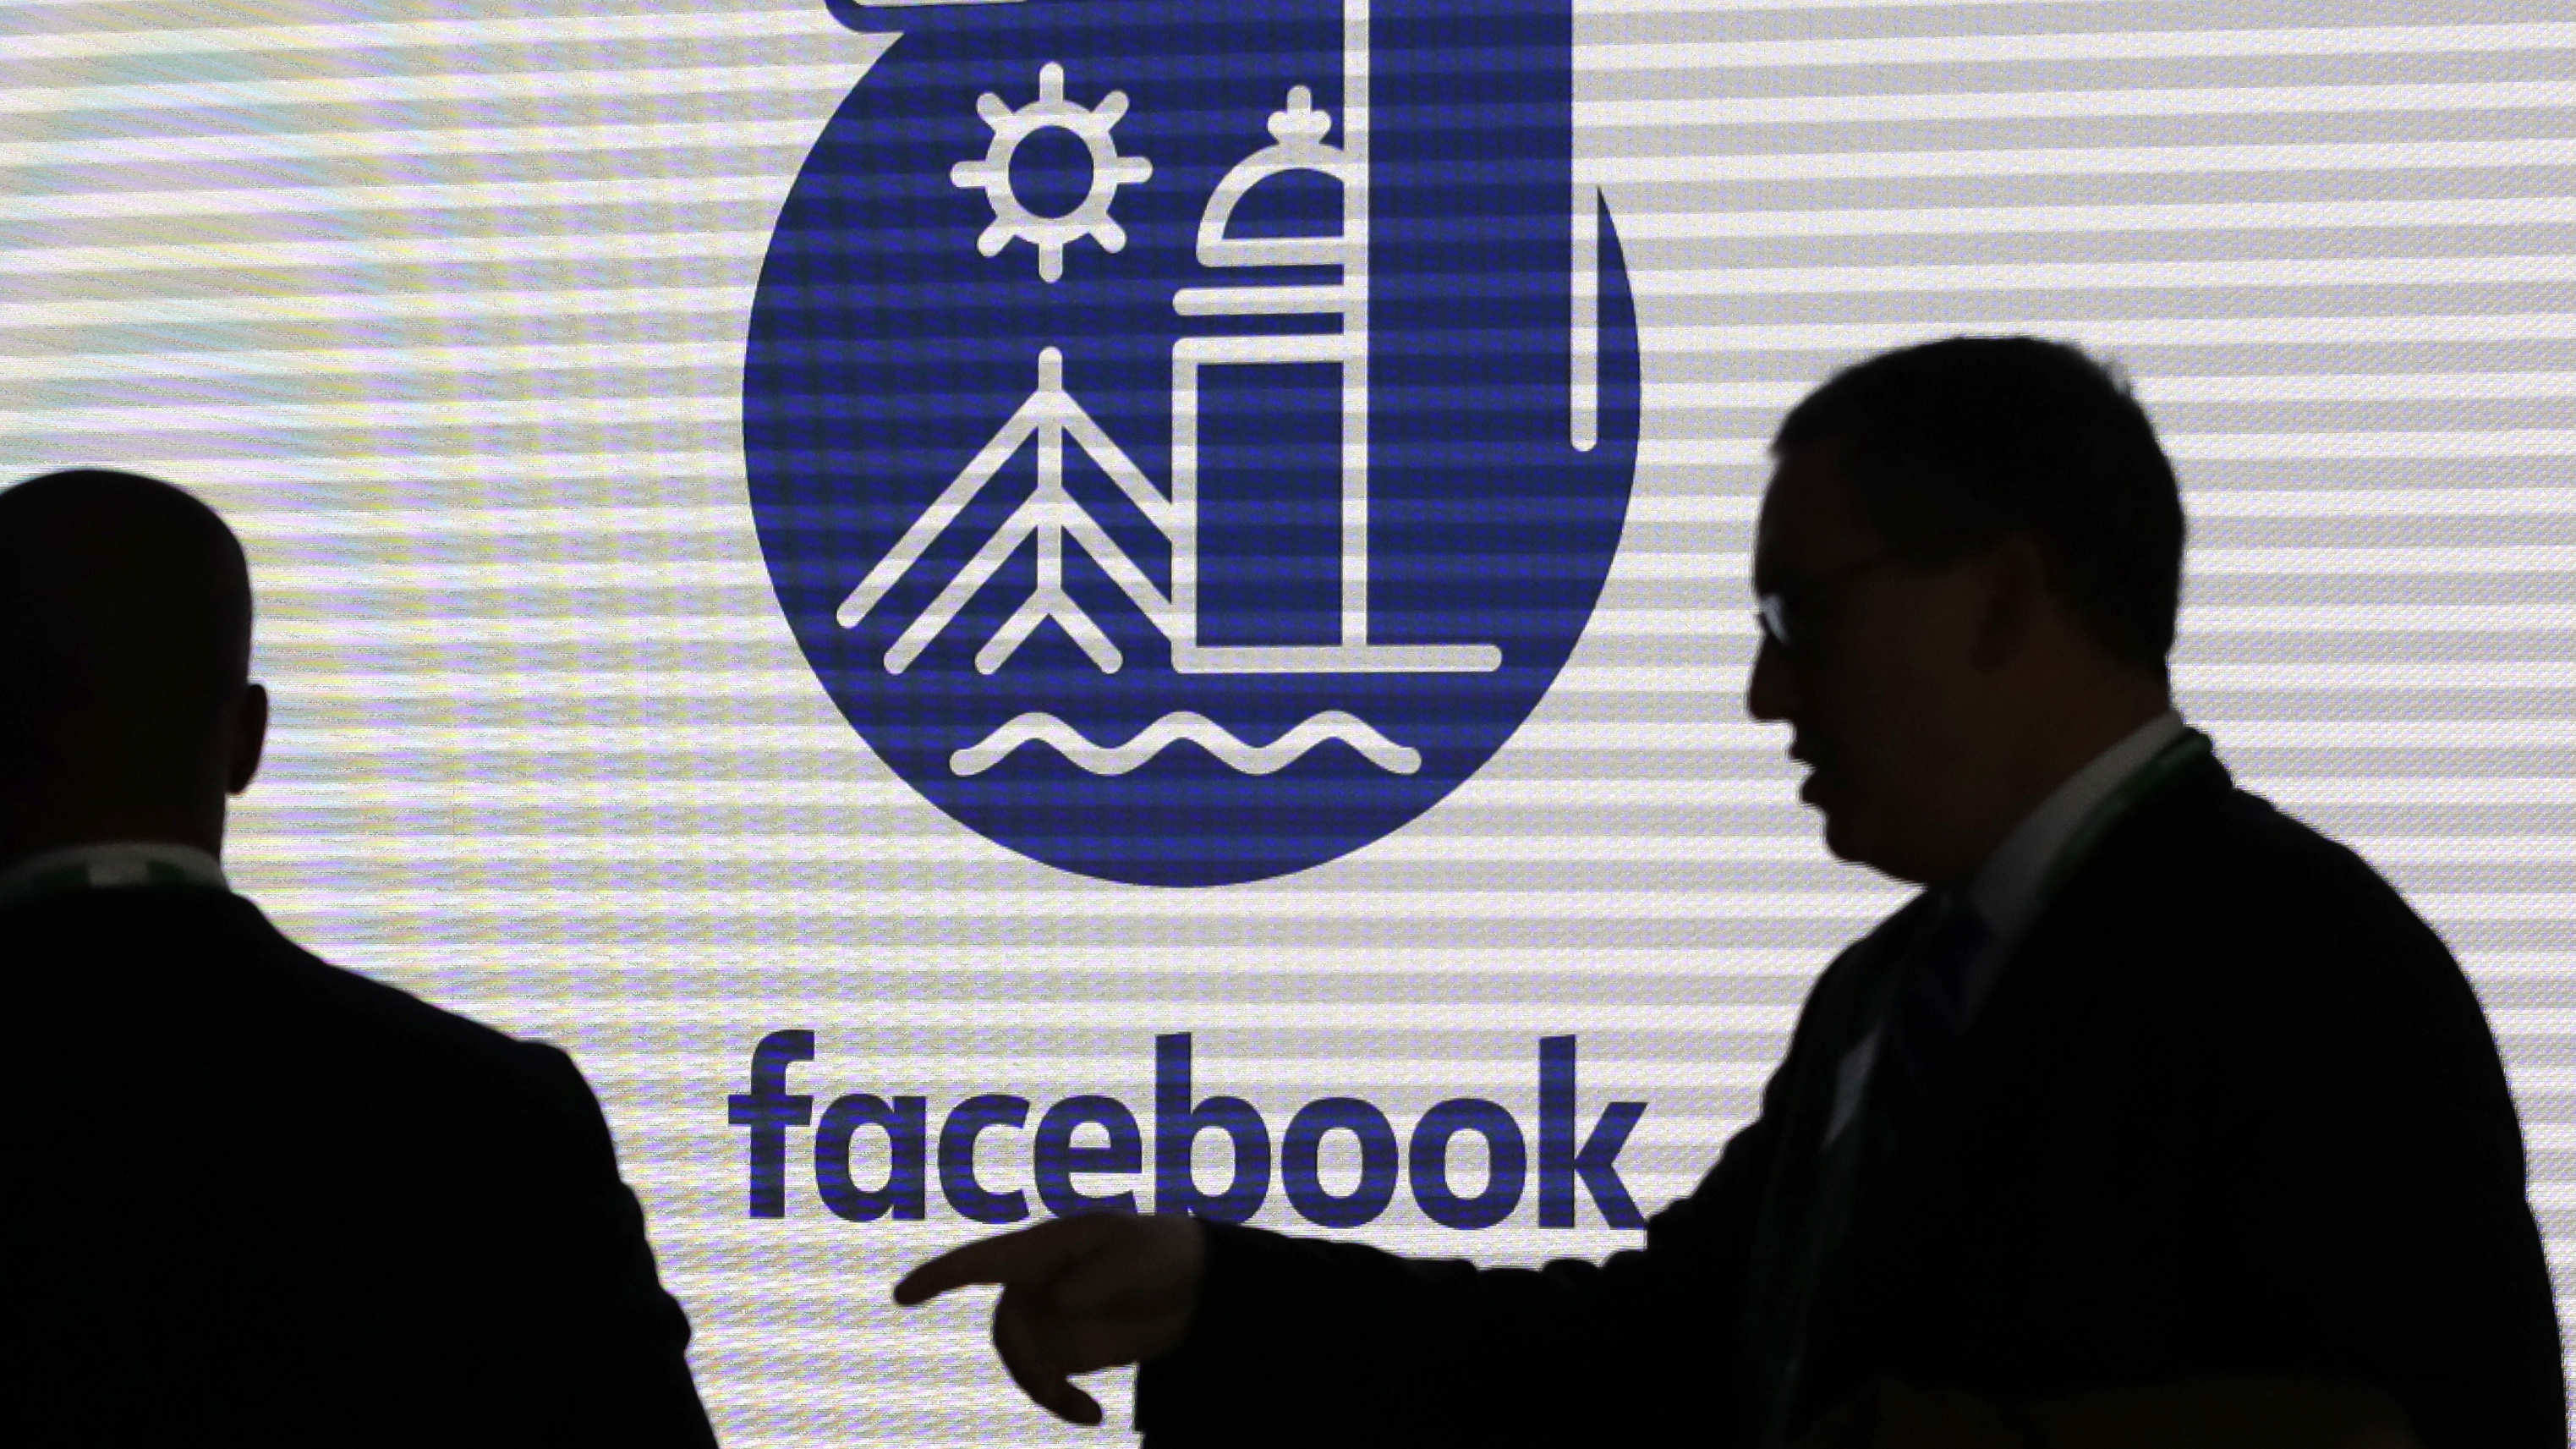 Attorneys general from eight states and the District of Columbia have launched a probe into Facebook and its market dominance.